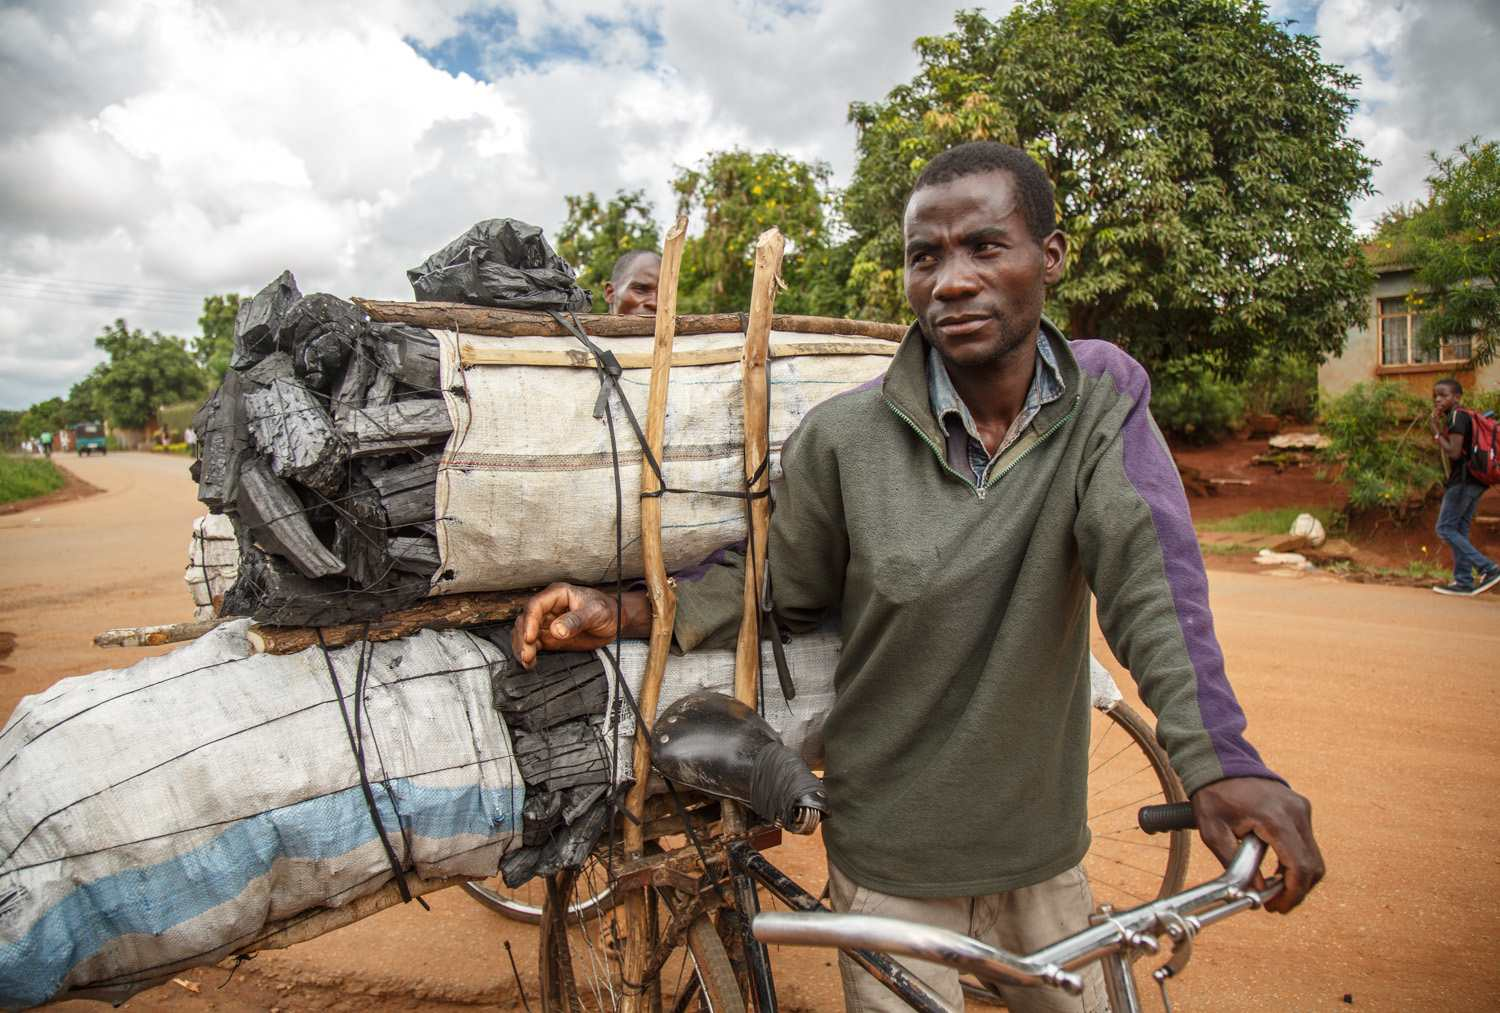 Mr Marino has been pedalling all through the night to reach Lilongwe with bags of charcoal that weigh 50 kg or more each.